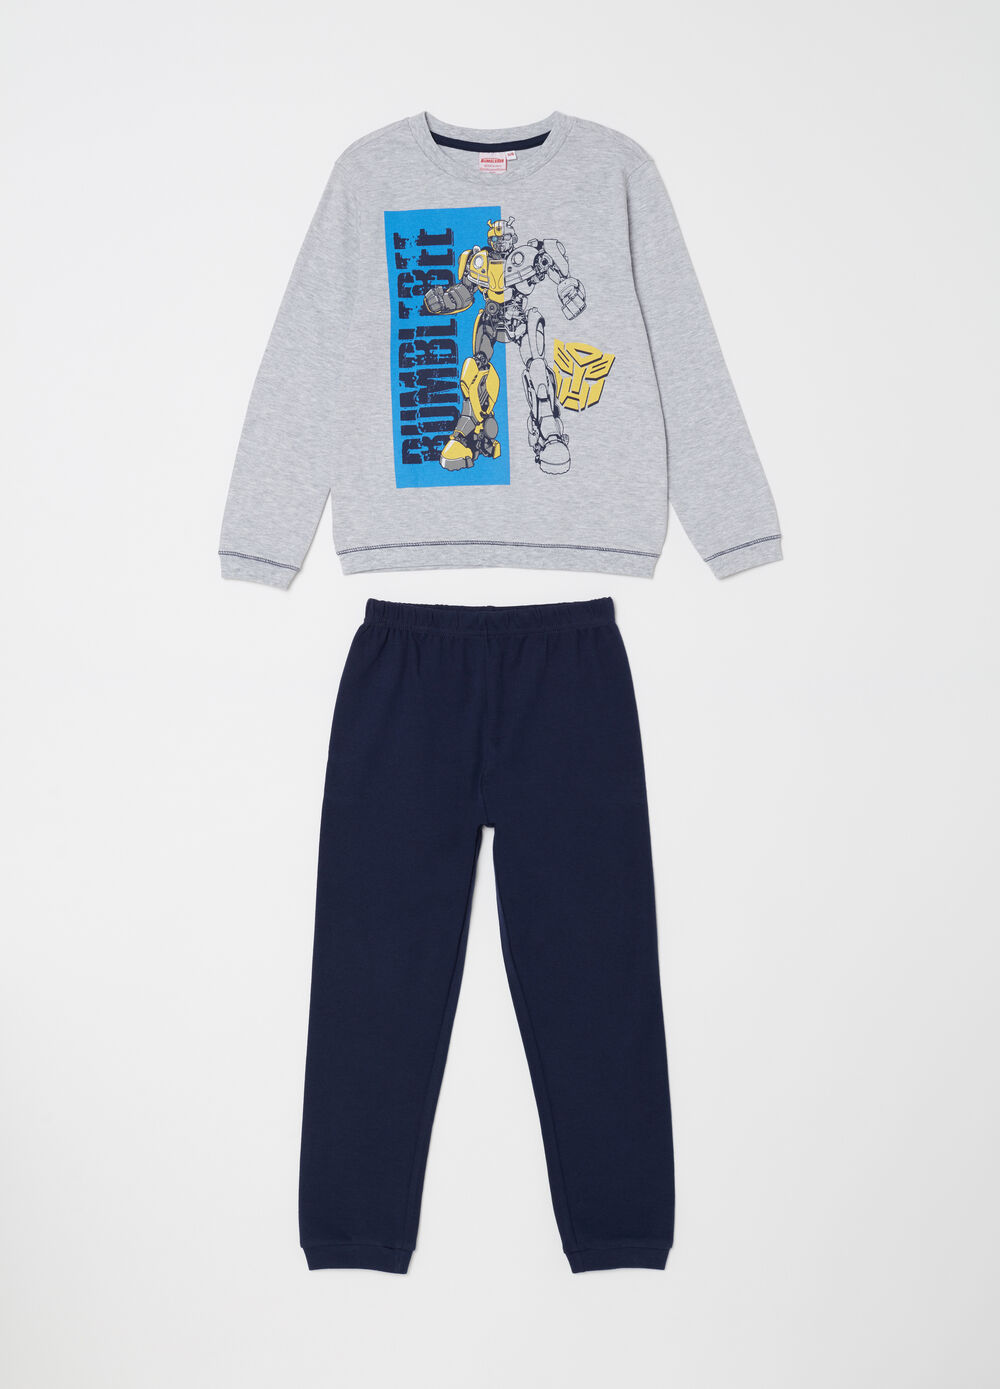 Transformers pyjamas with top and trousers